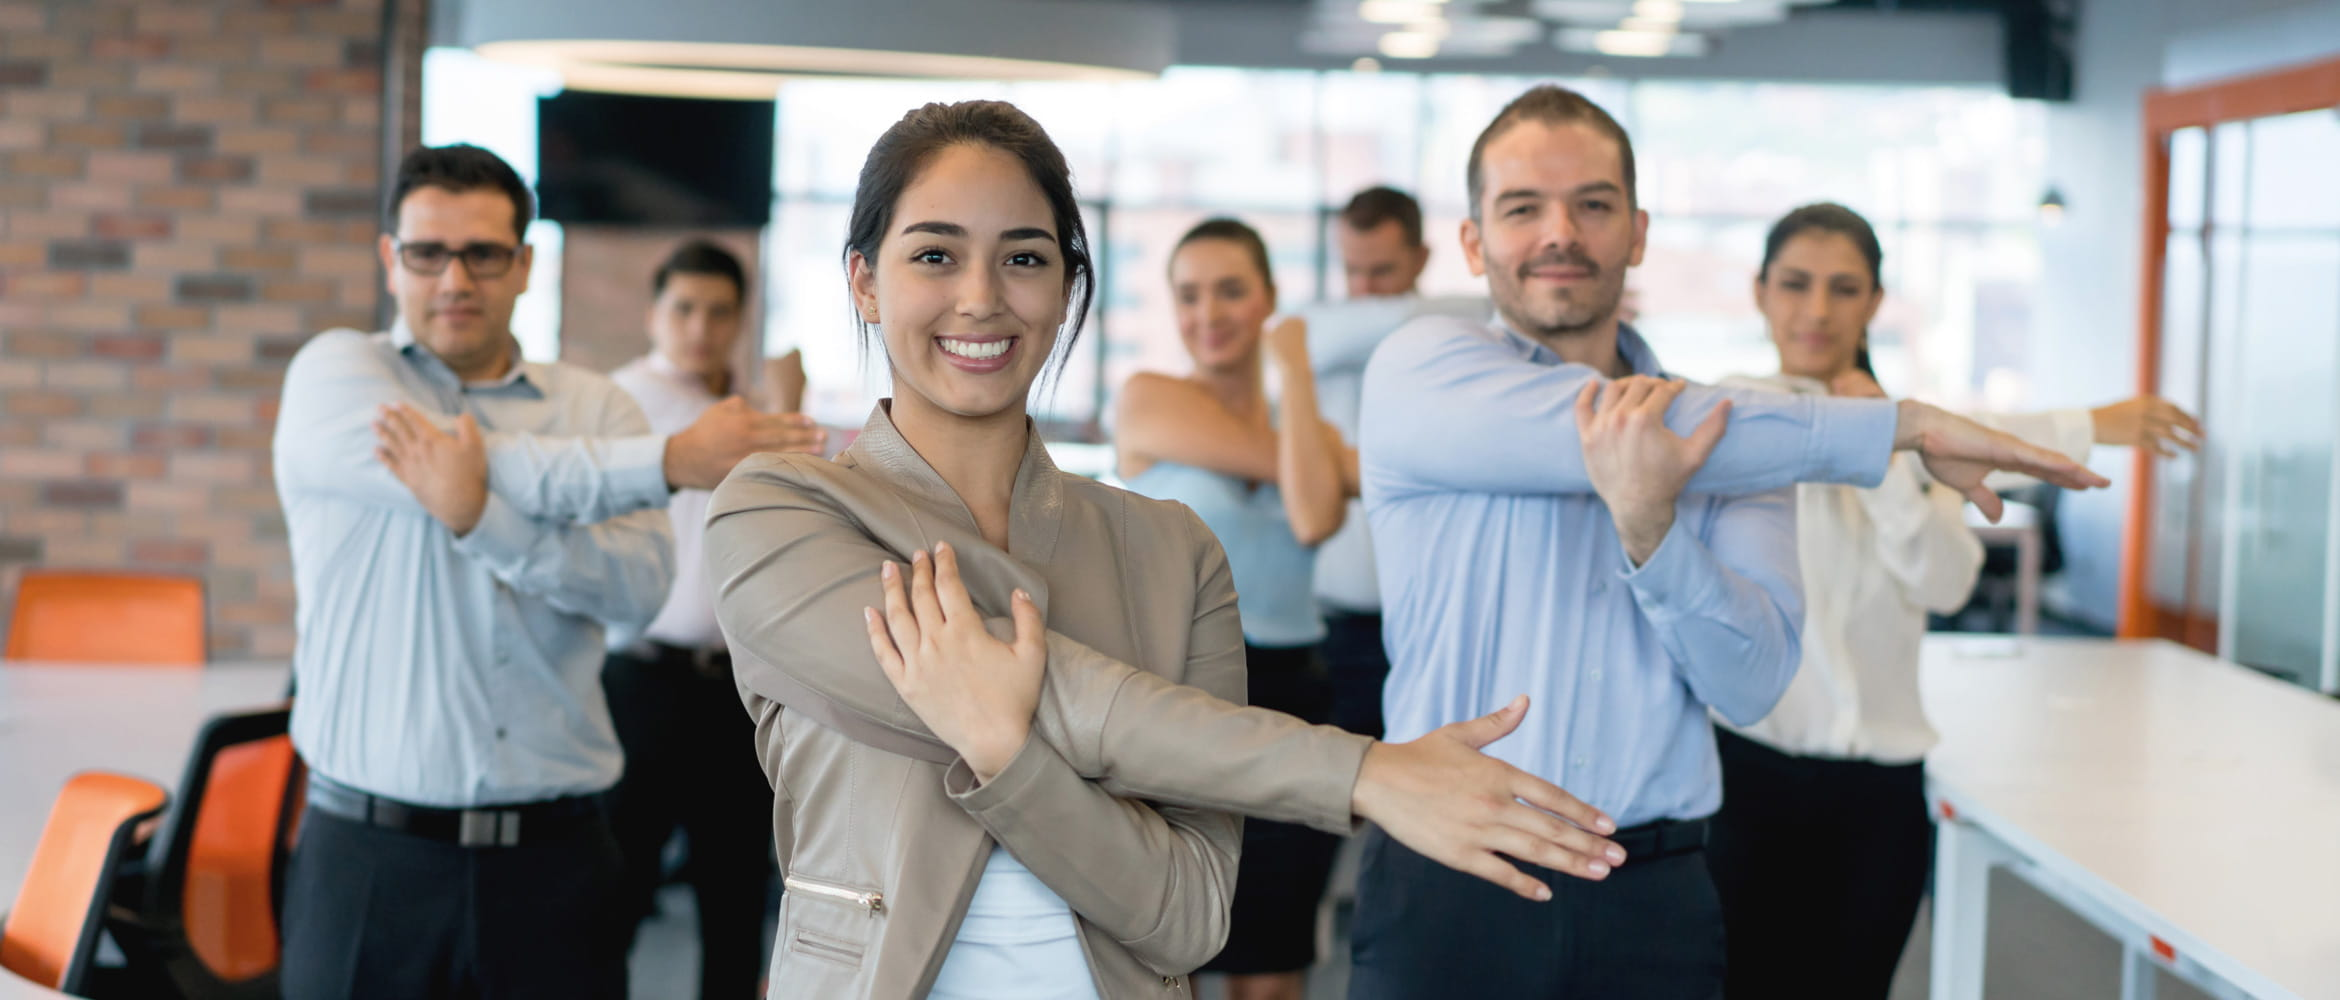 Seven office co-workers take time out to focus on fitness and wellbeing by doing some stretching exercises together in the workplace of the future